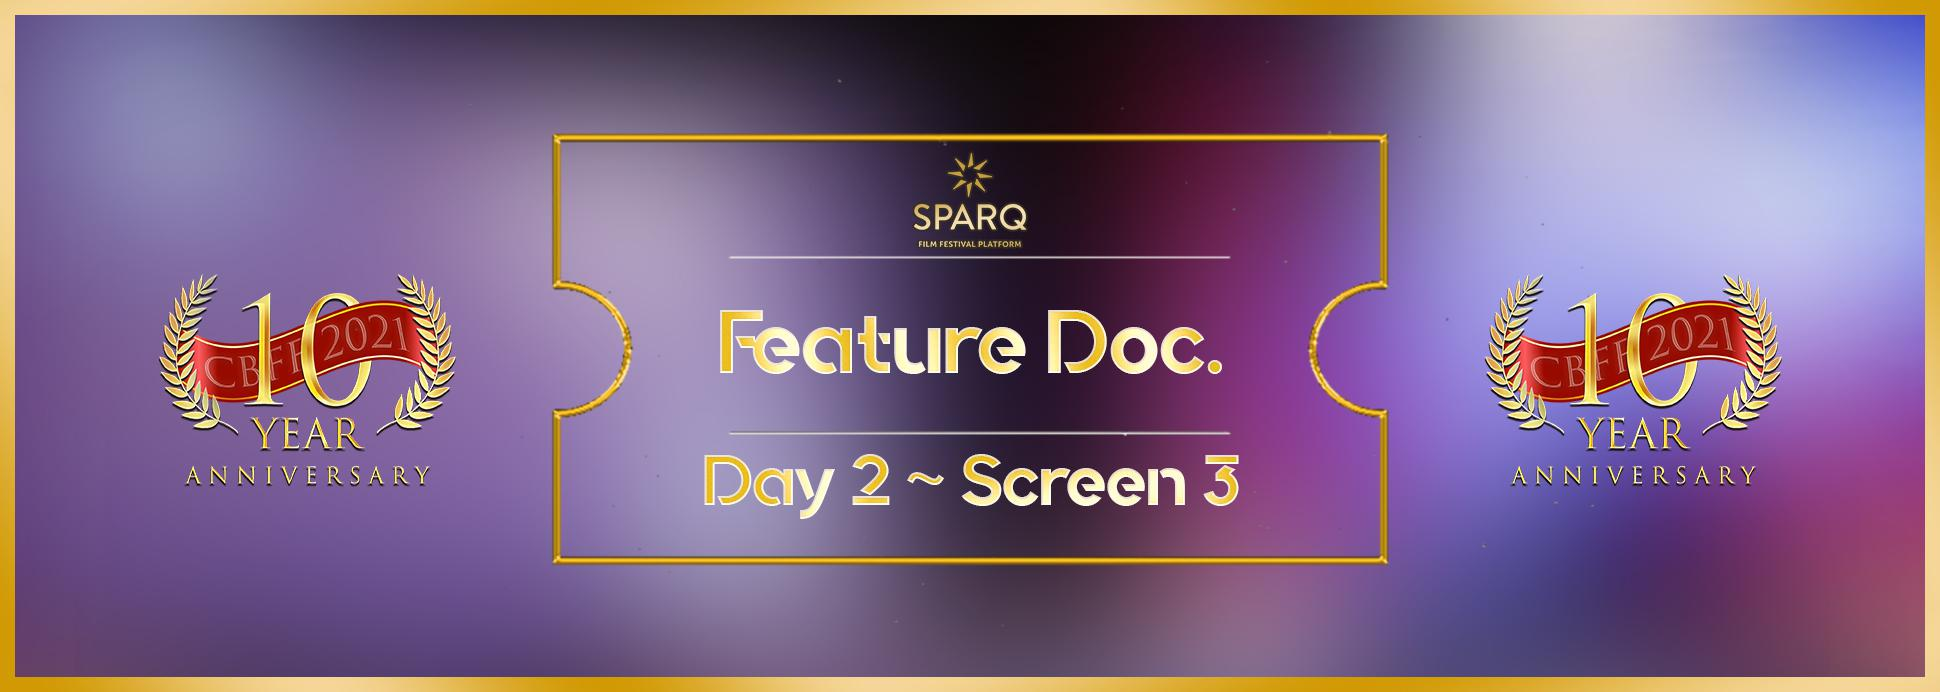 Day 2, Screen 3: Feature Doc.